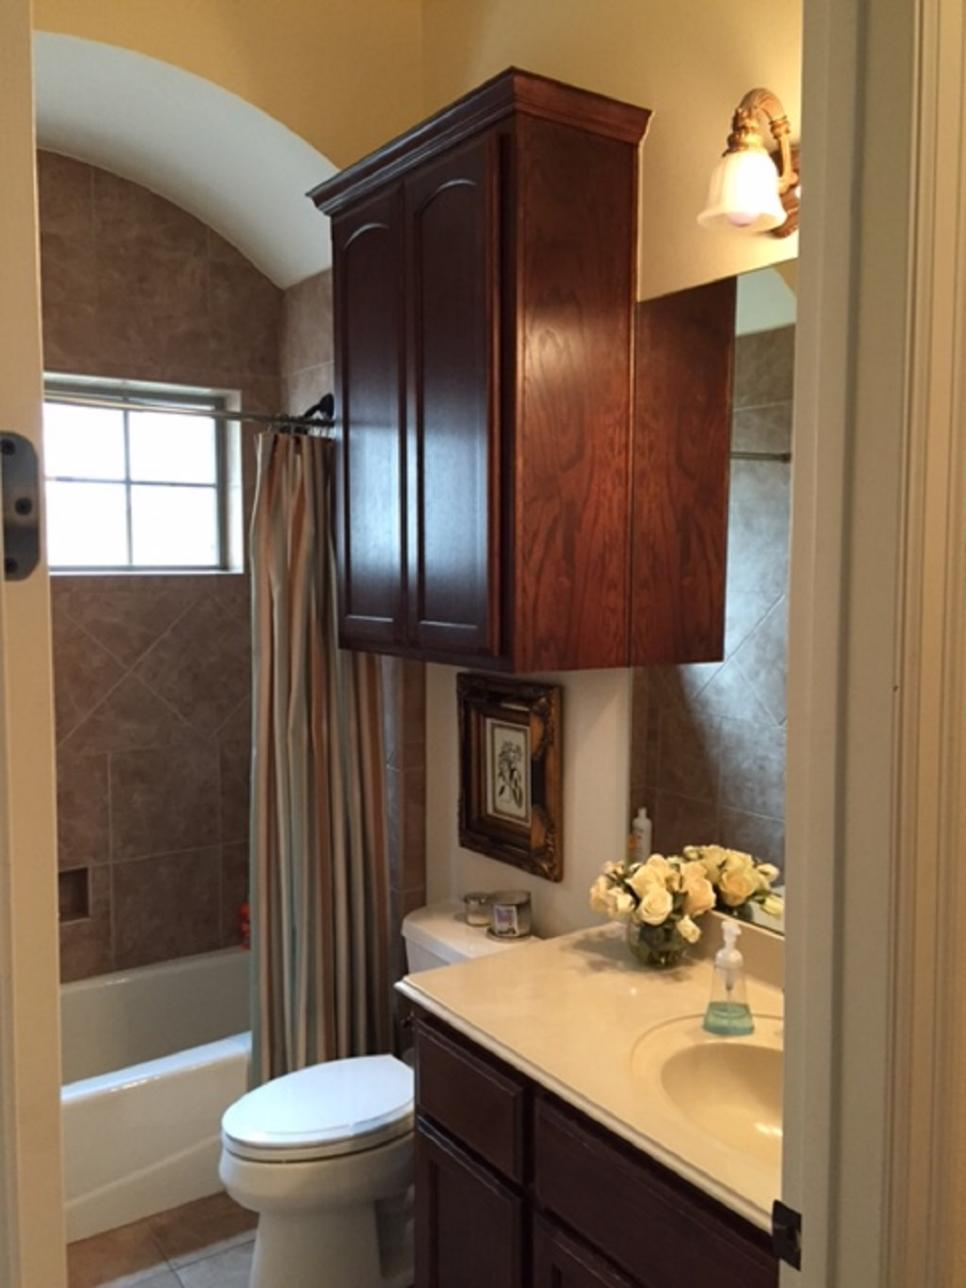 Before and after bathroom remodels on a budget hgtv for Bathroom remodeling pictures and ideas